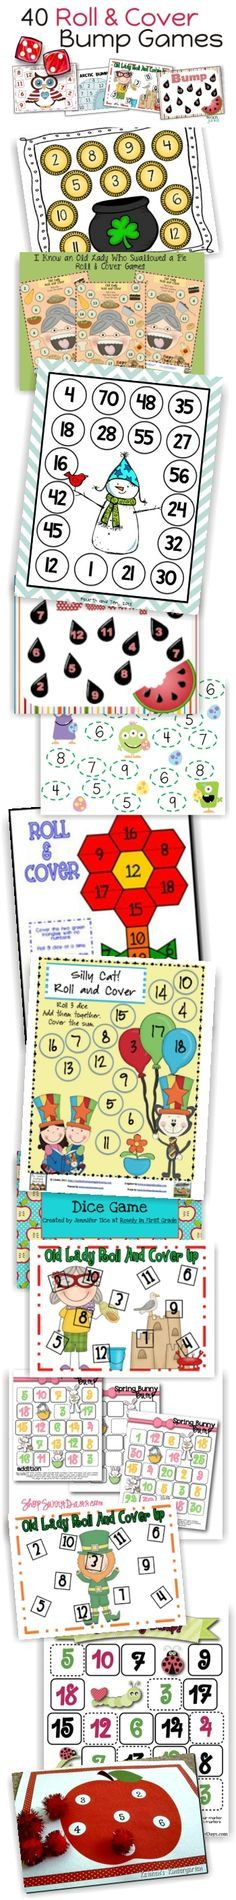 25 best ideas about cool math games on pinterest cool for Cool math games christmas